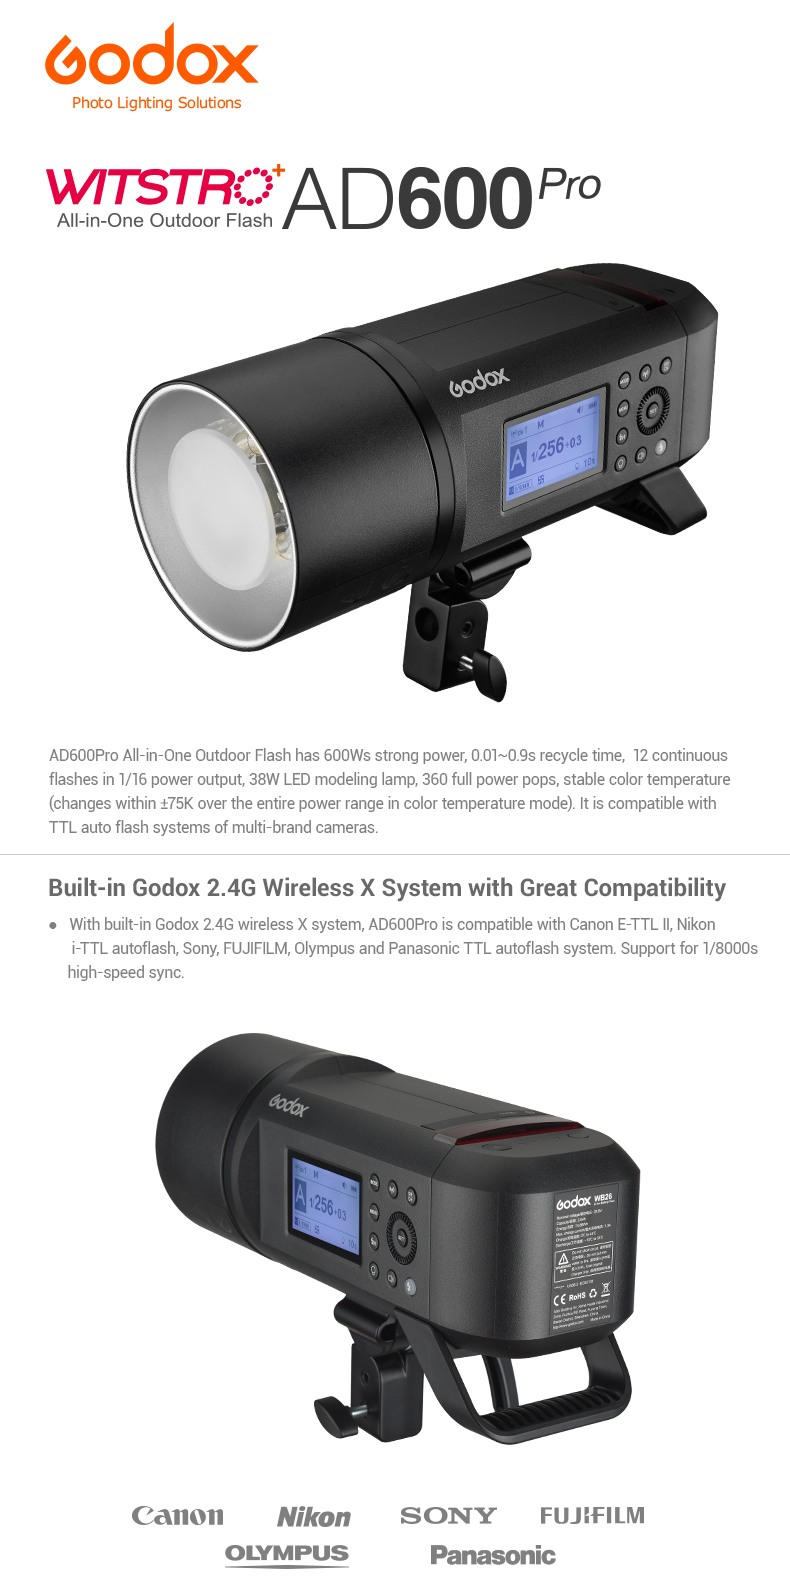 Godox Witstro AD600Pro. All-in-one Outdoor Flash. Built-in Godox 2.4G Wireless X System with Great Compability. For Canon, Nikon, Sony, Fujifilm, Olympus, Panasonic.